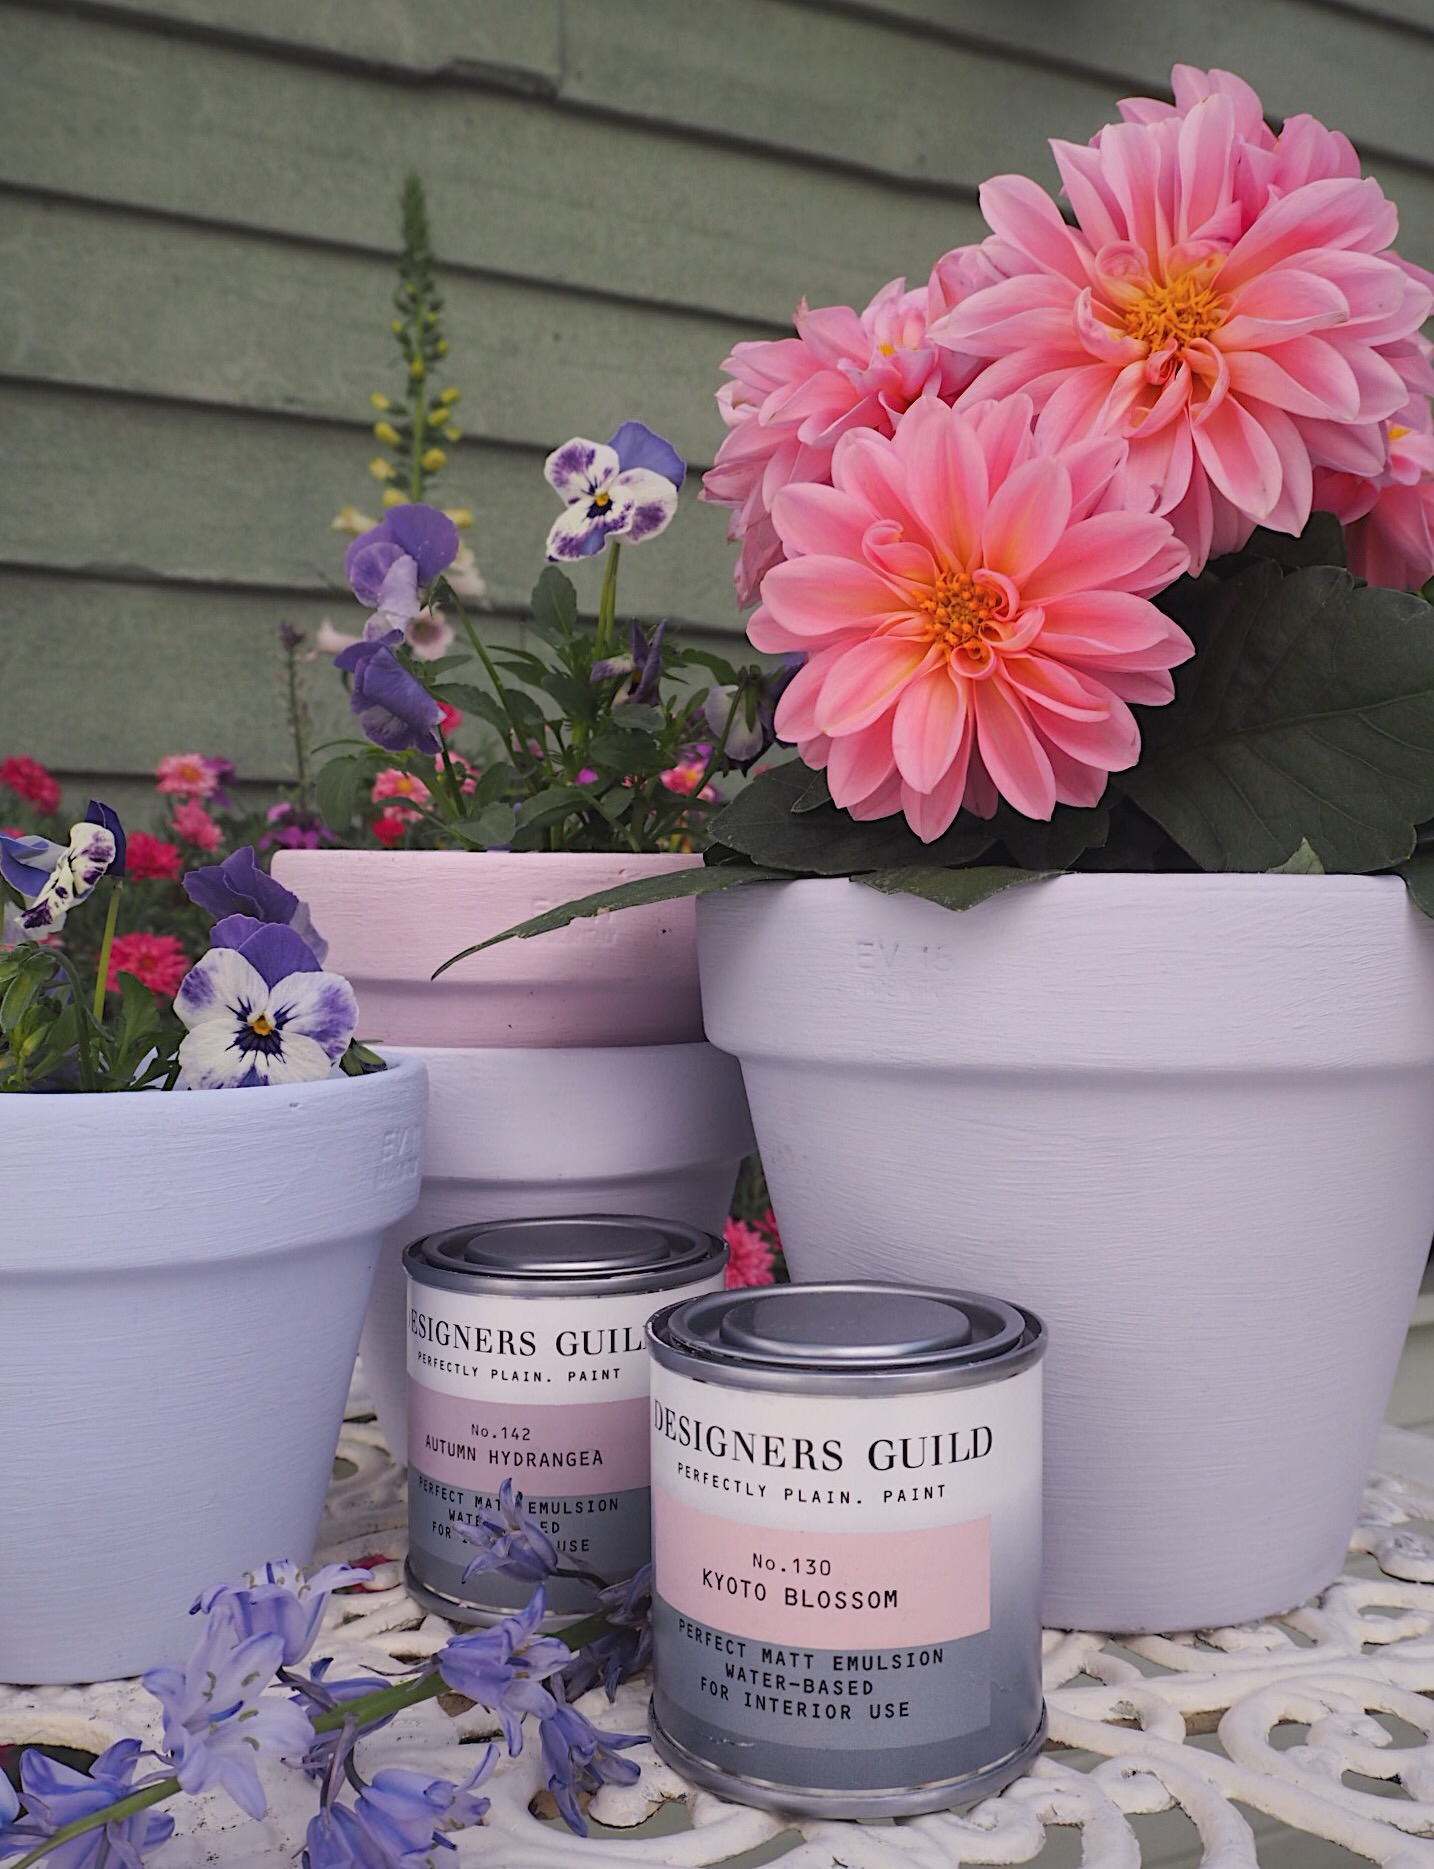 From left to right, pots painted in French Lavender, Faded Blossom, Lilac Bud and First Wisteria, all  Designers Guild.